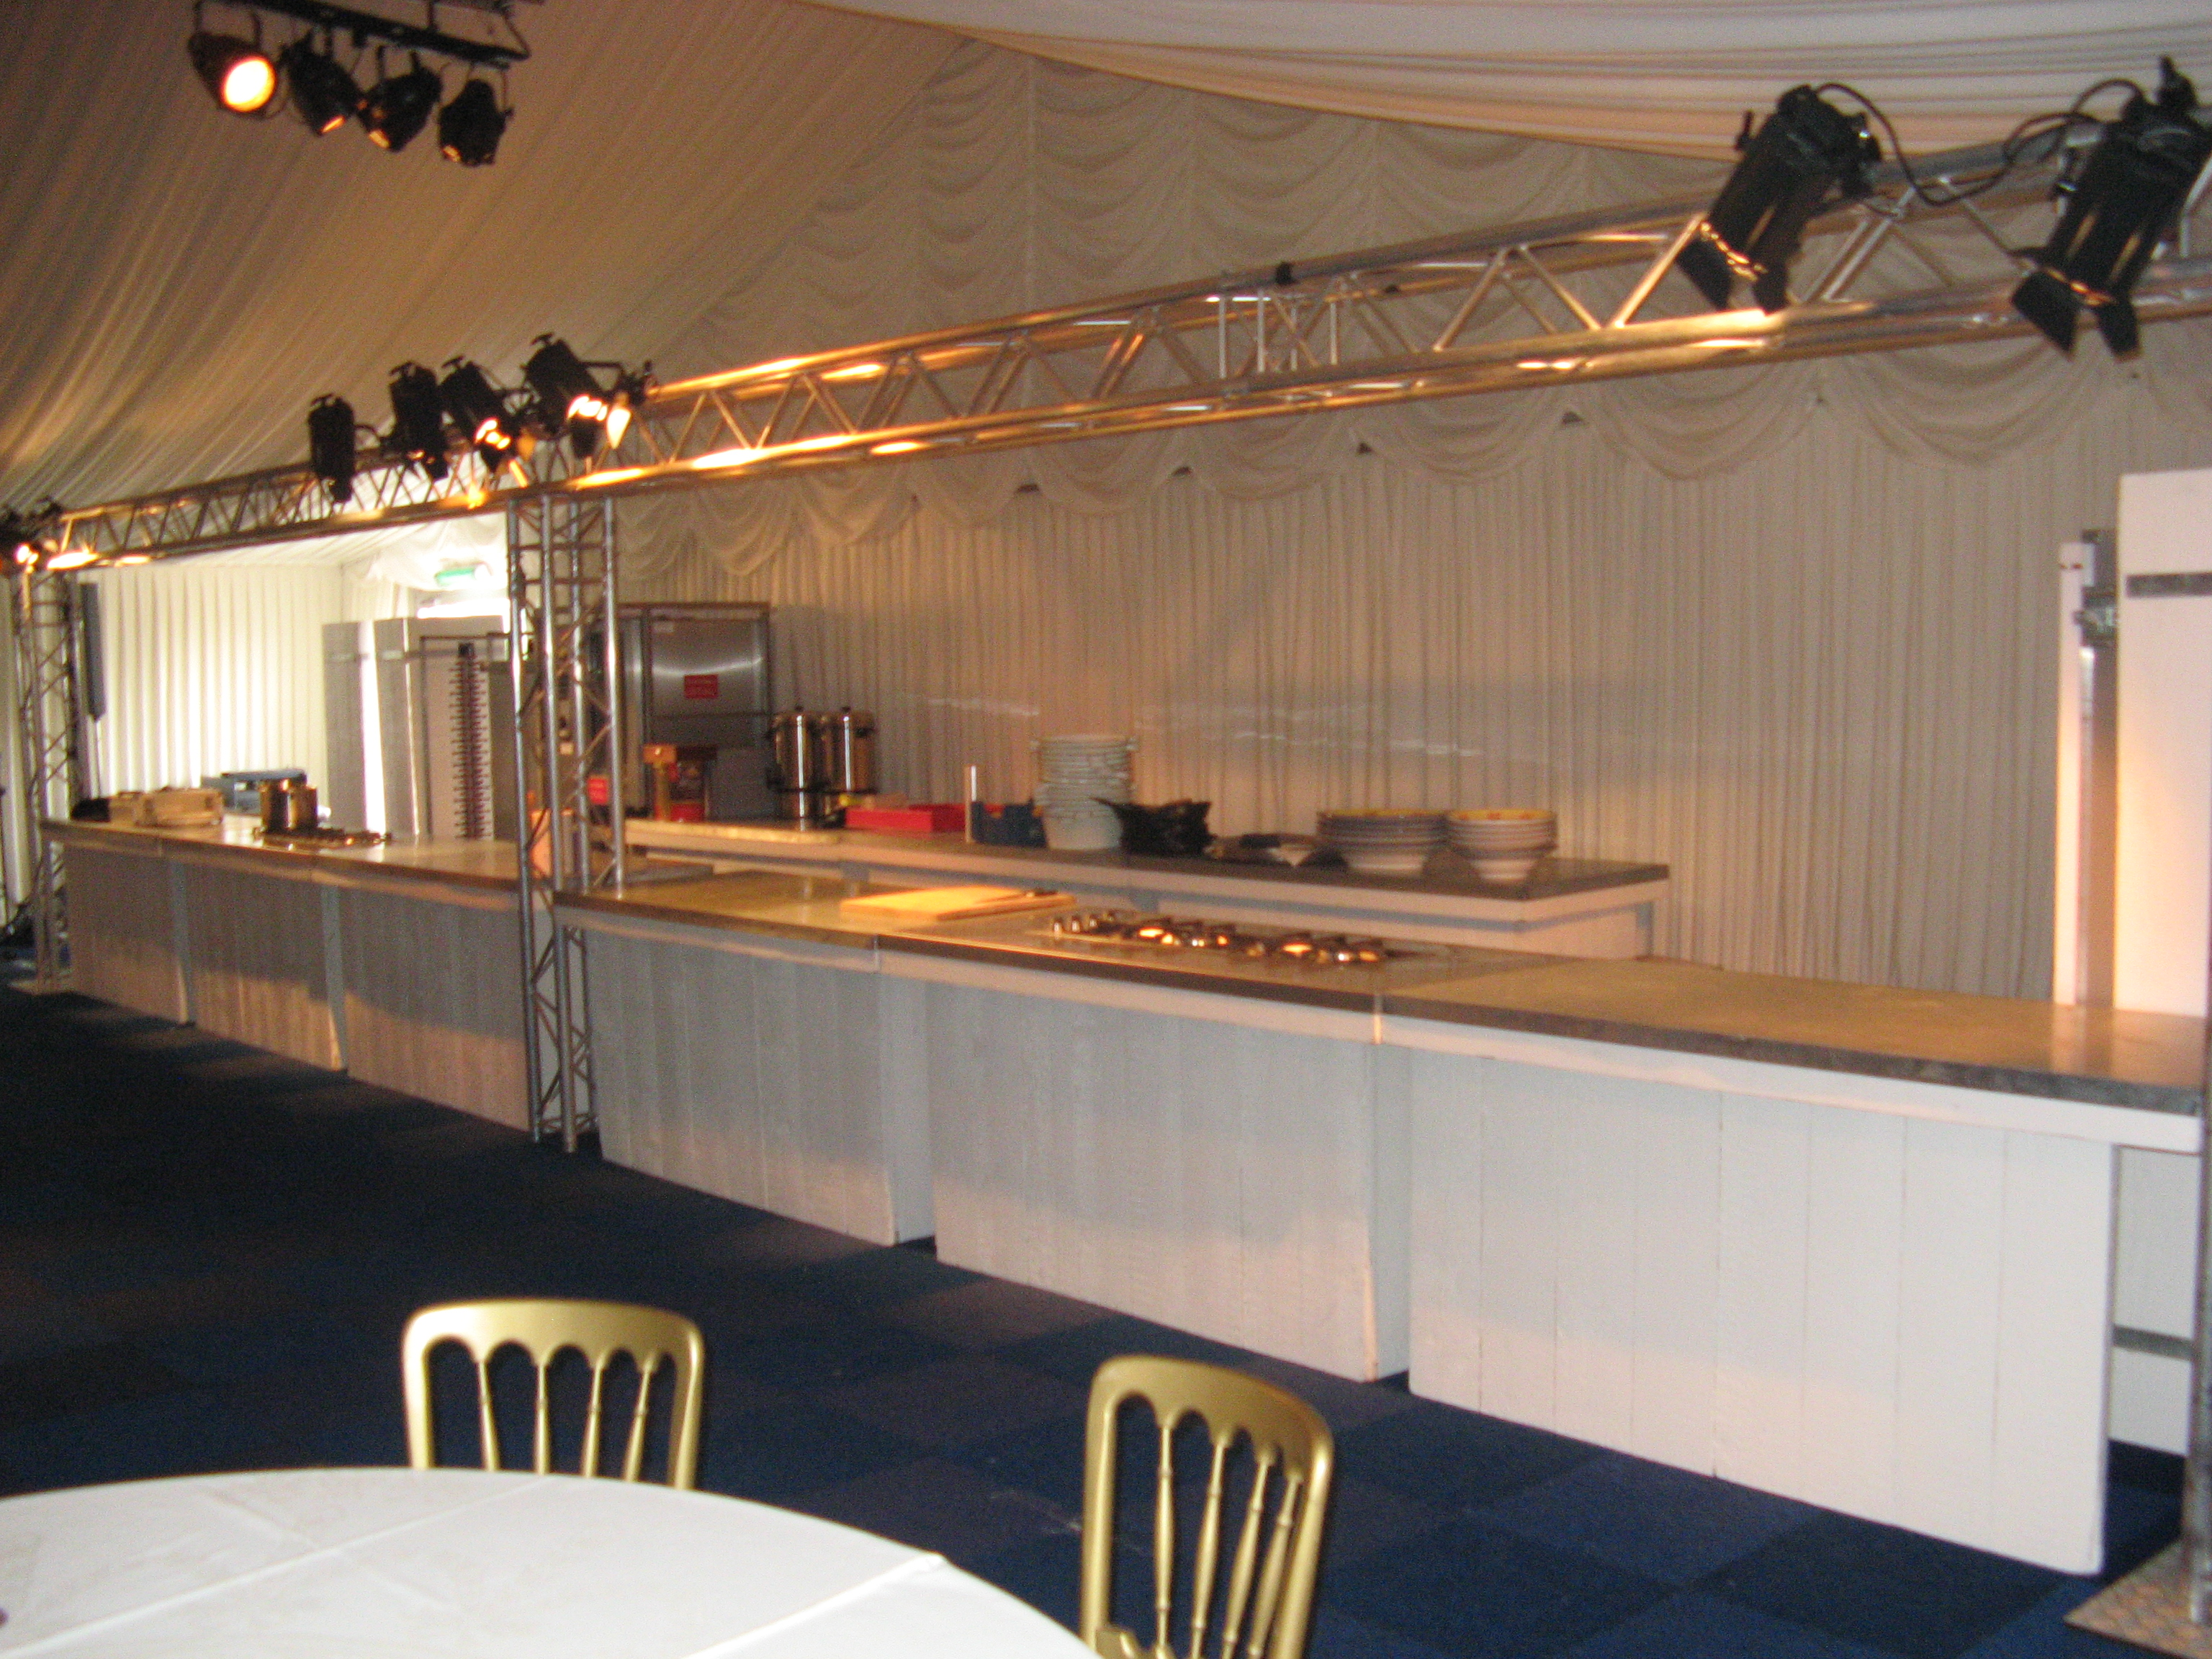 Utrecht catering, catering Amsterdam, catering Rotterdam, catering aan huis, www.catering-buffet.nl, catering, decoratie, buffet, diner